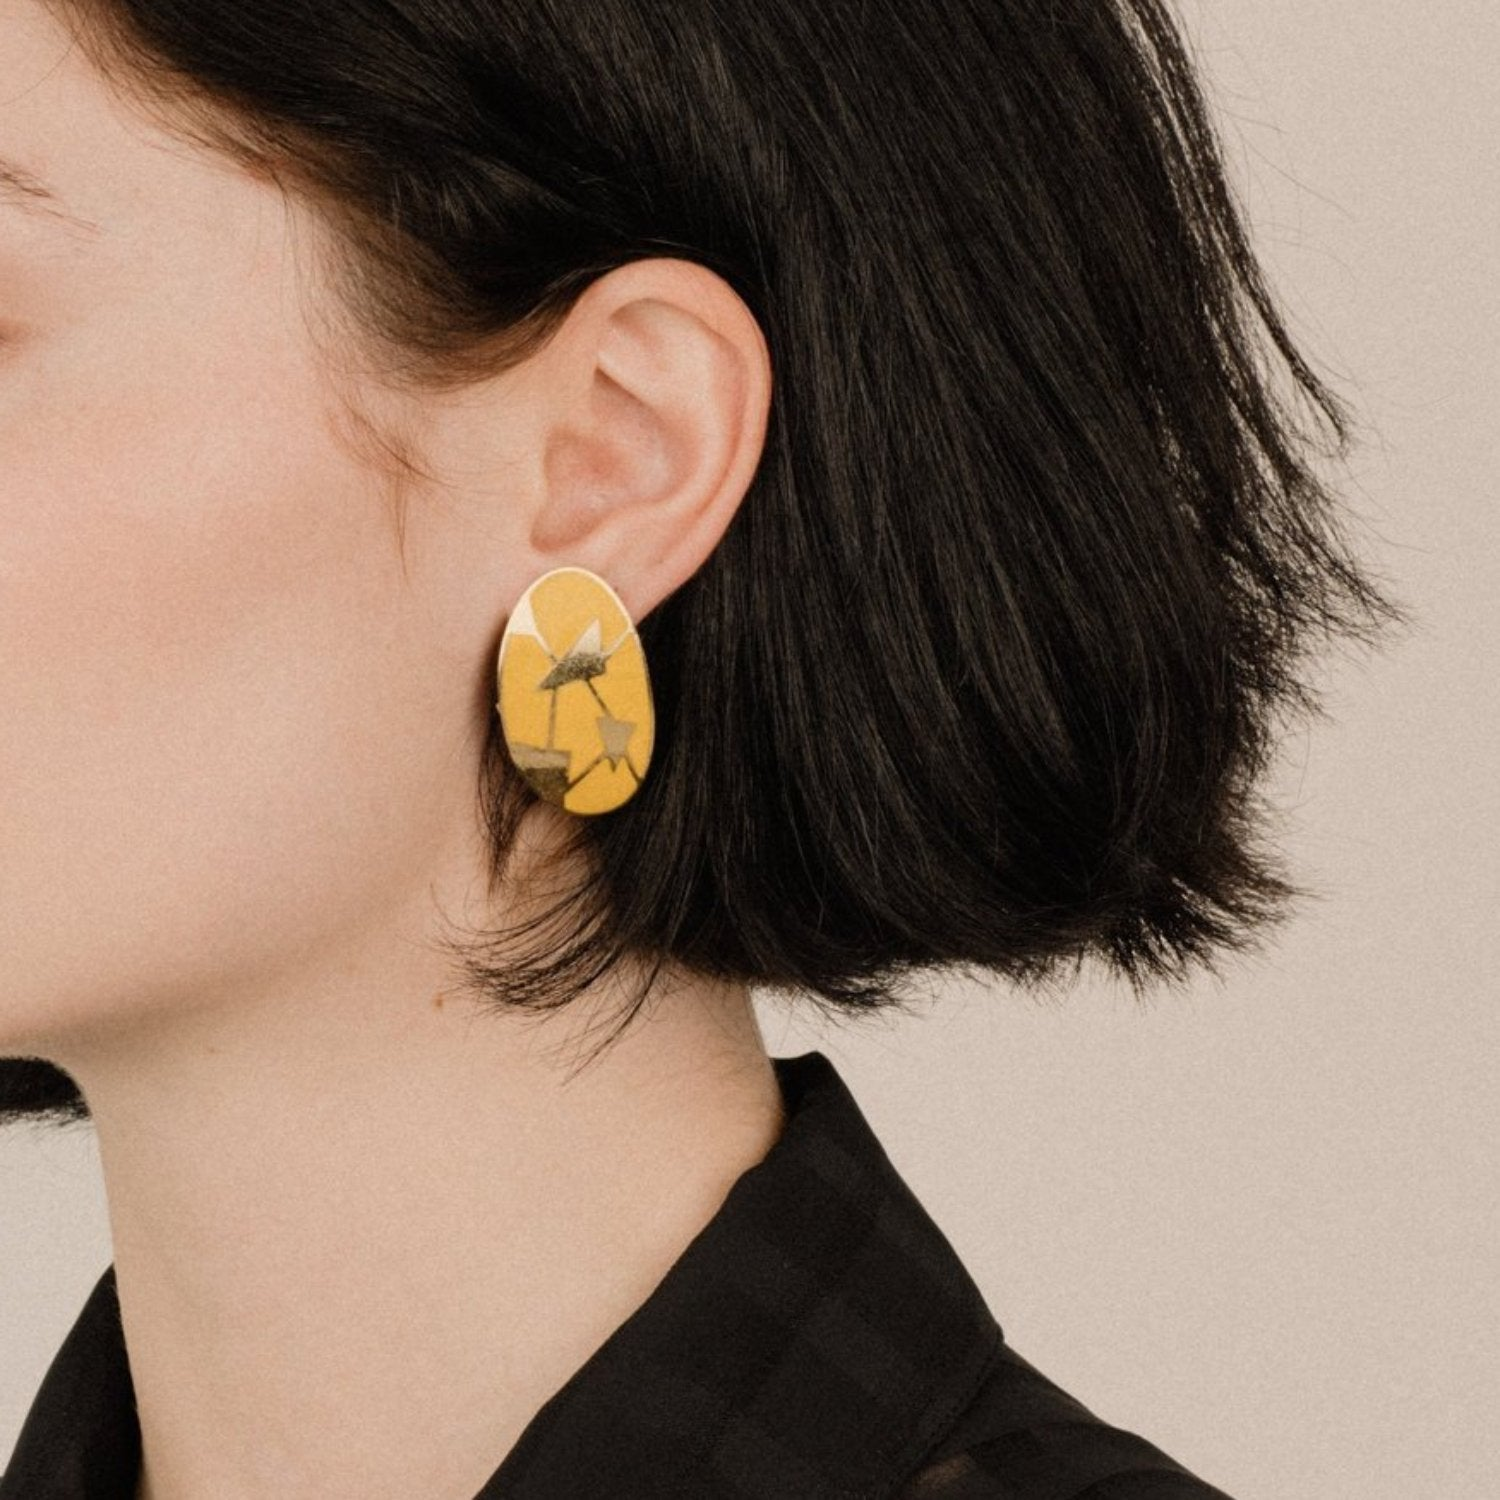 Vintage Gold + Yellow Bowed Oval Geometric Abstract Art Statement Earrings